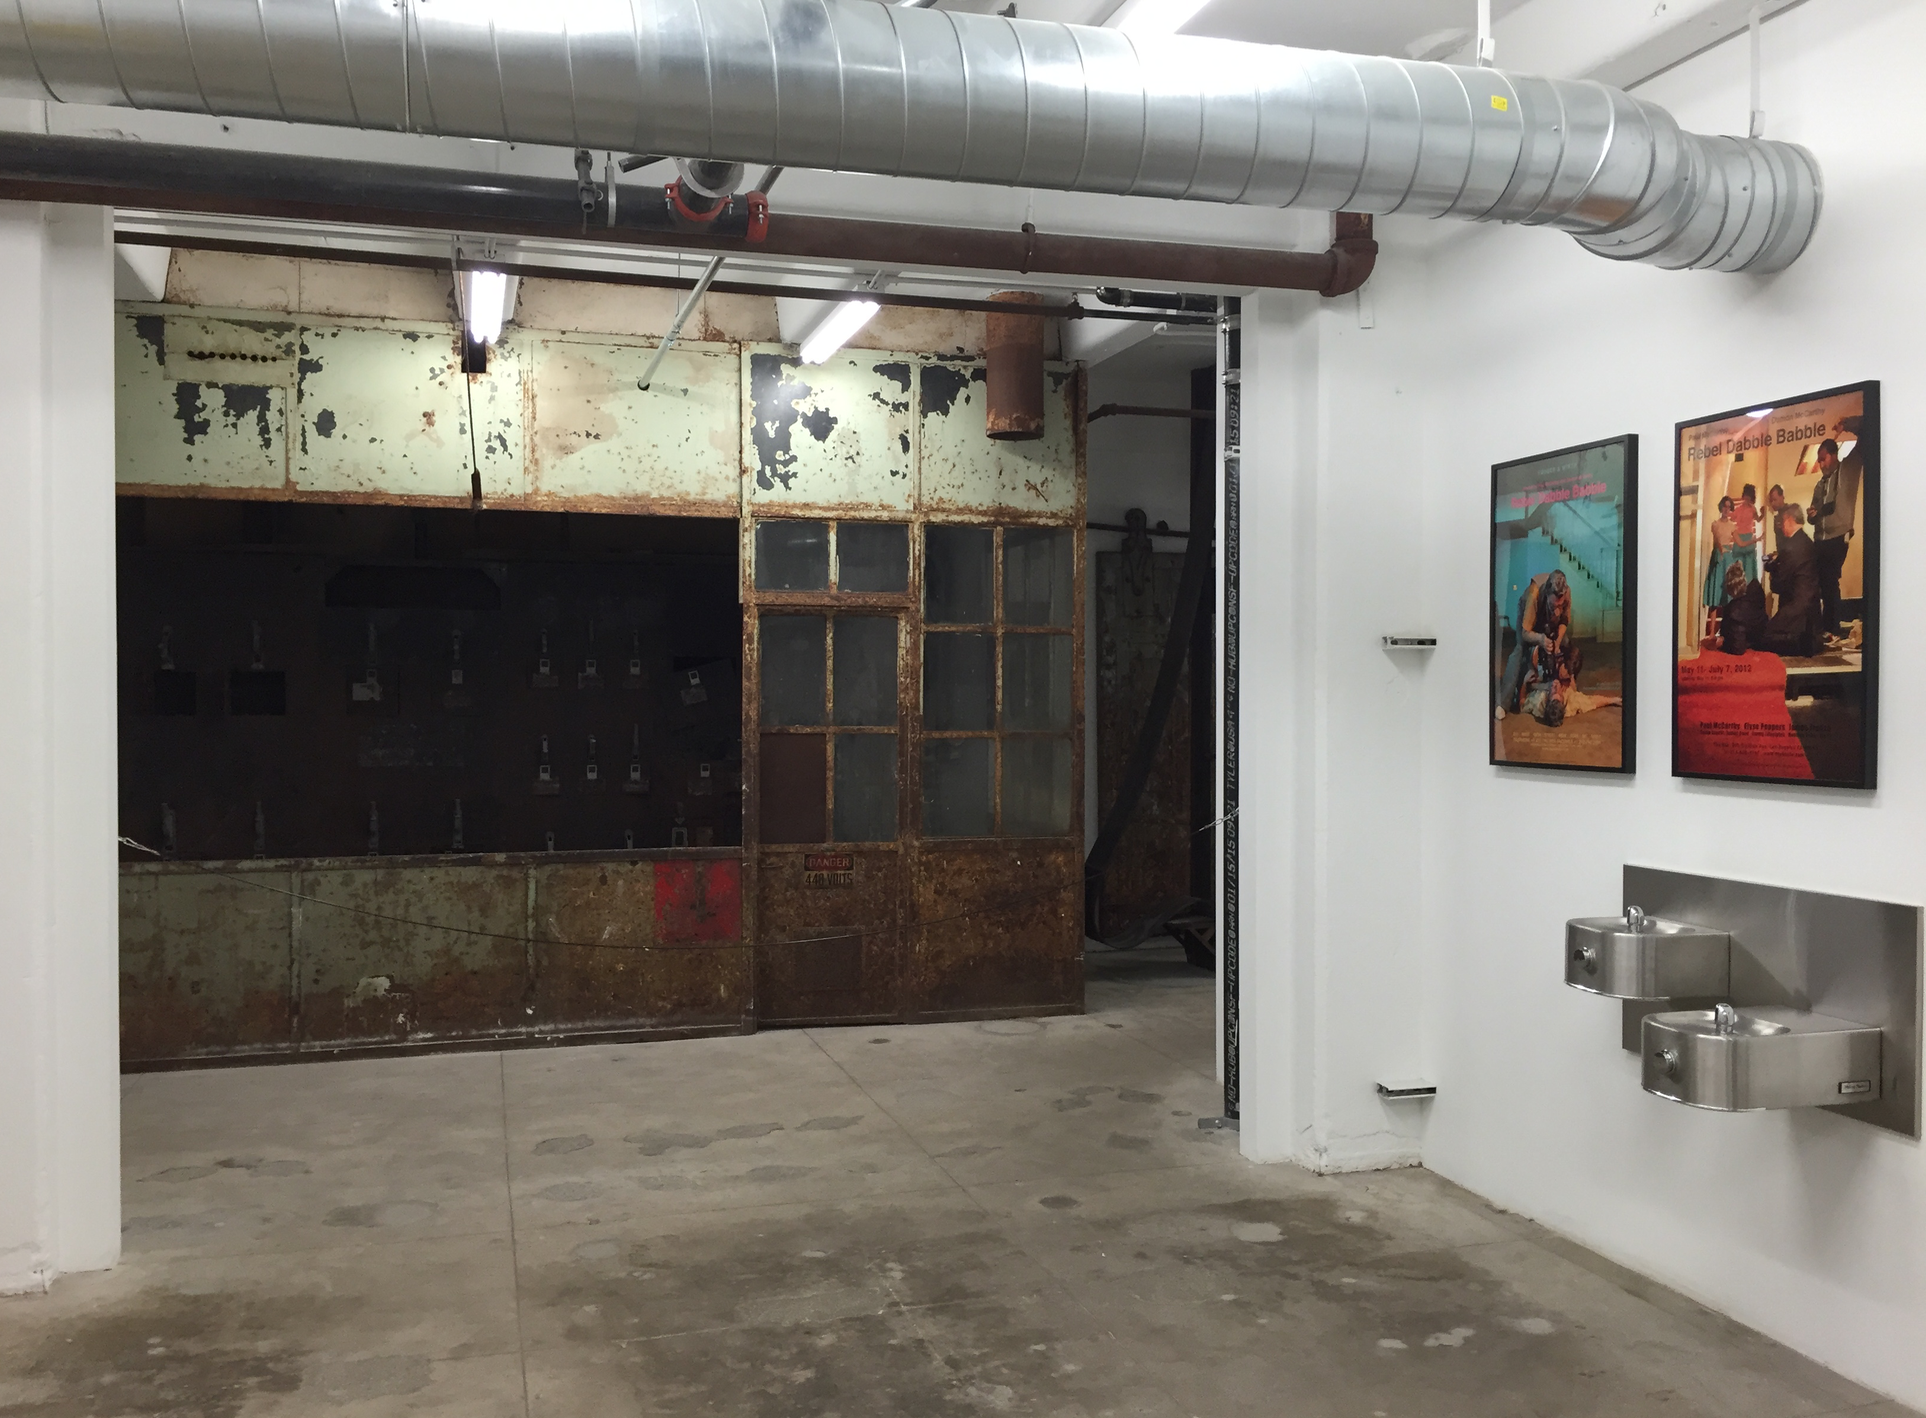 The remodel preserves a lot of the industrial history of the building.